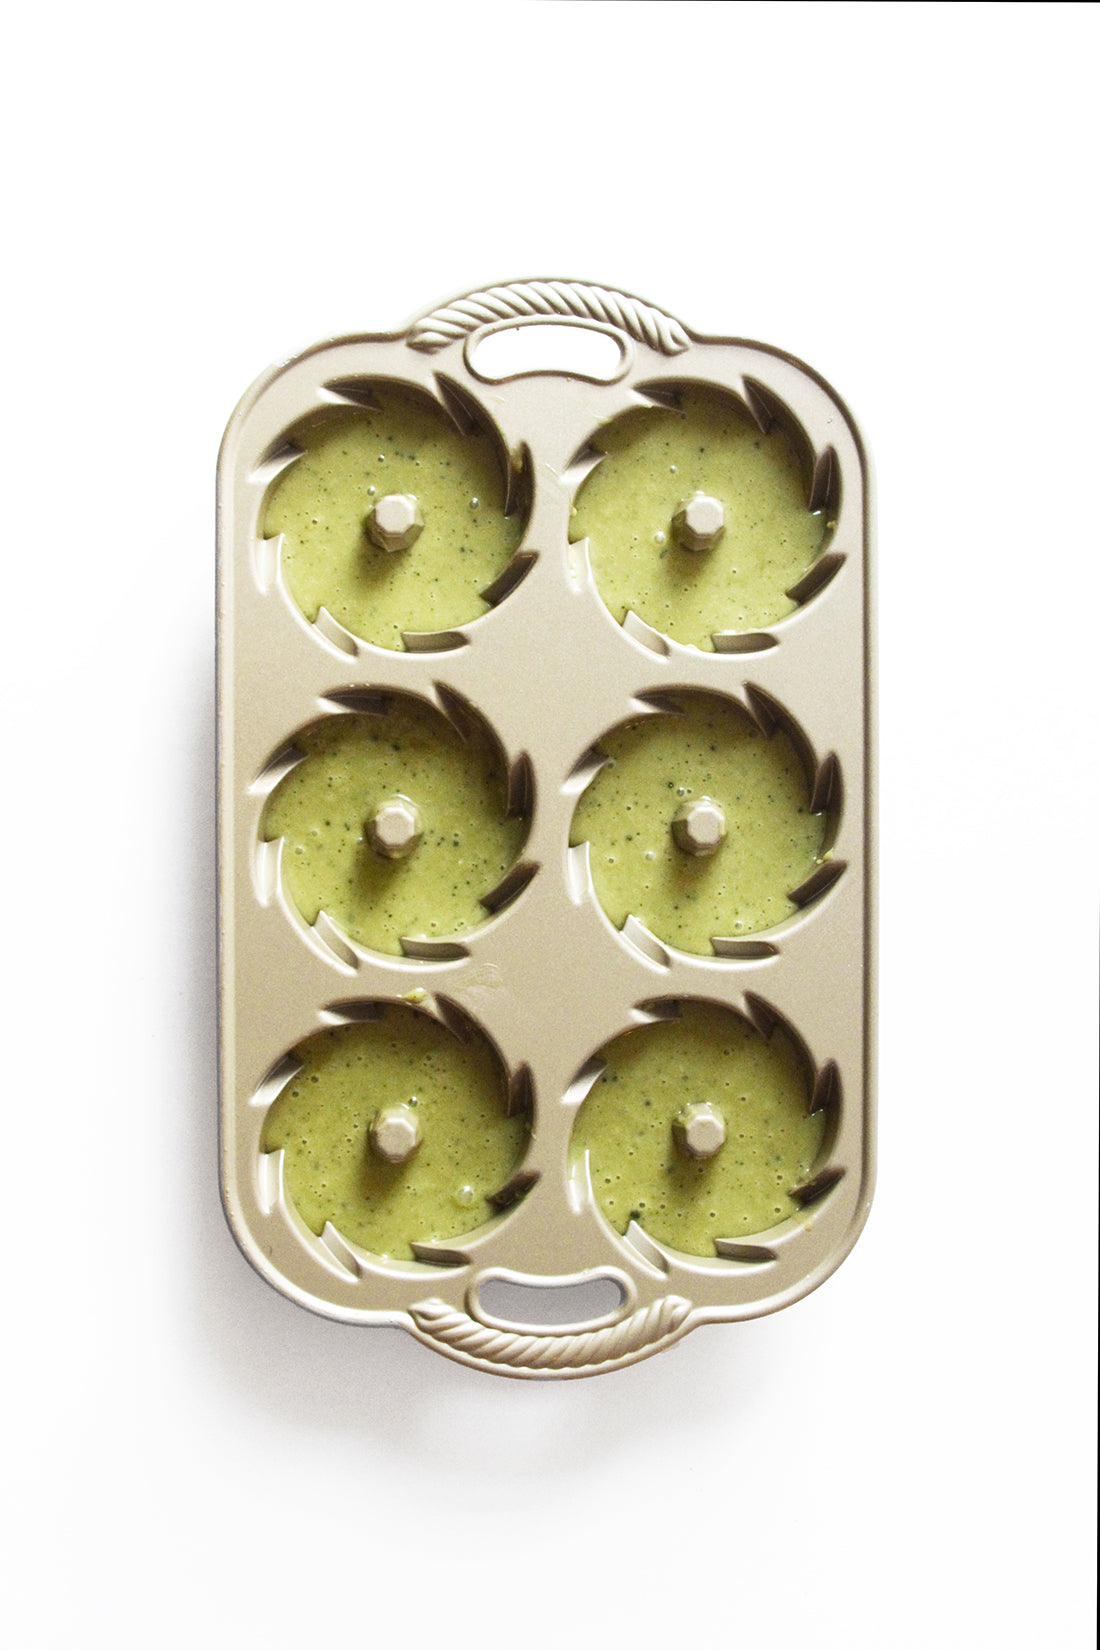 Image from above of Miss Jones Baking Co Matcha Tea Cakes batter in six cake molds